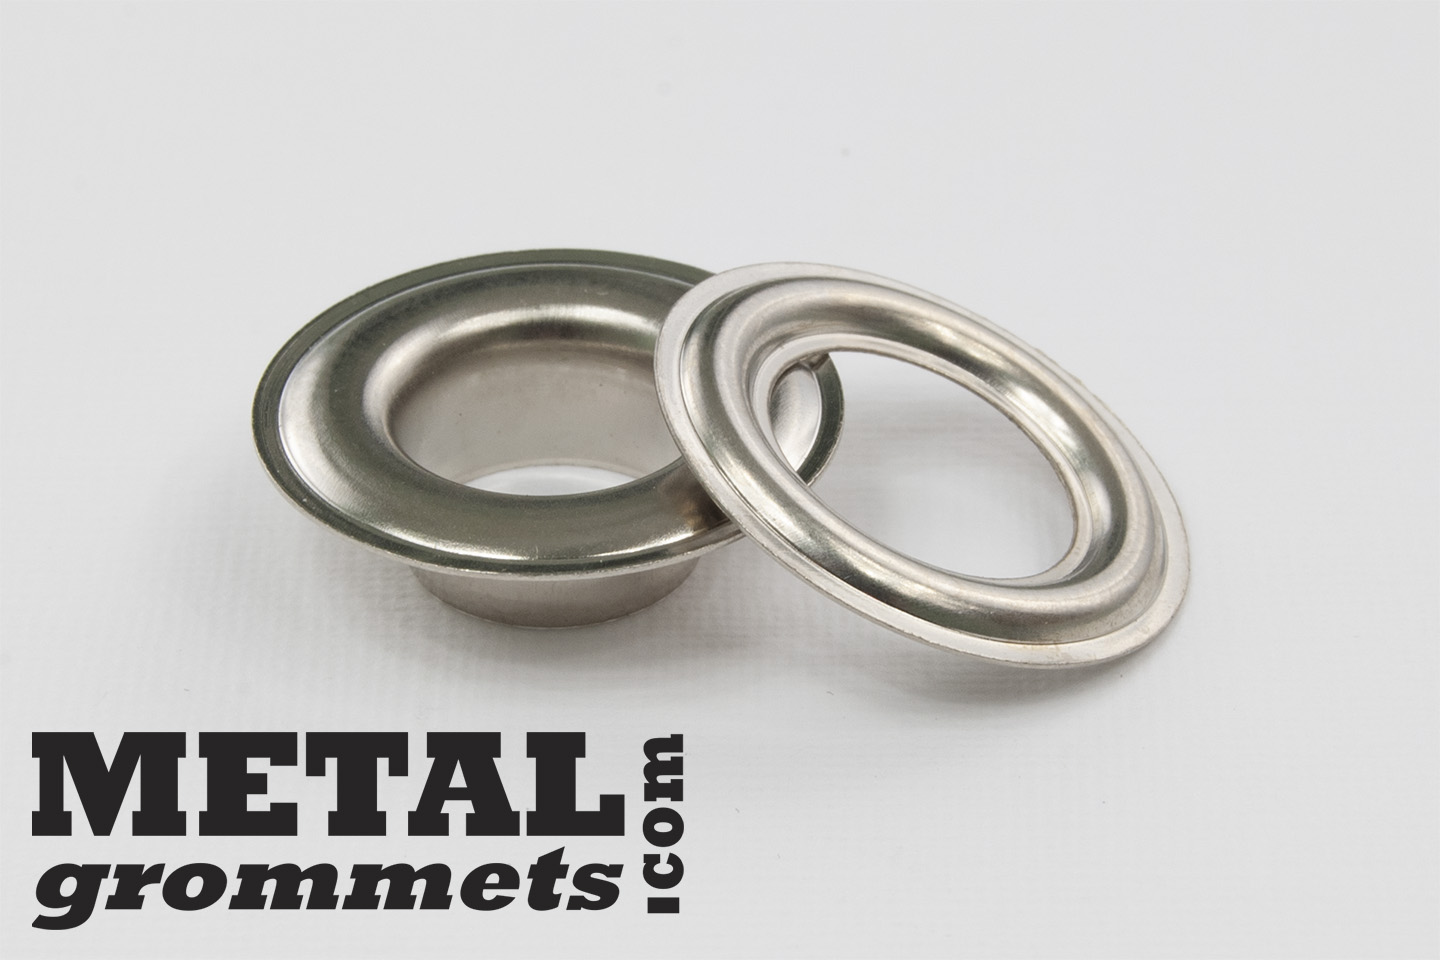 ClipsShop Nickel Grommets Qty 500 1//2 id #4